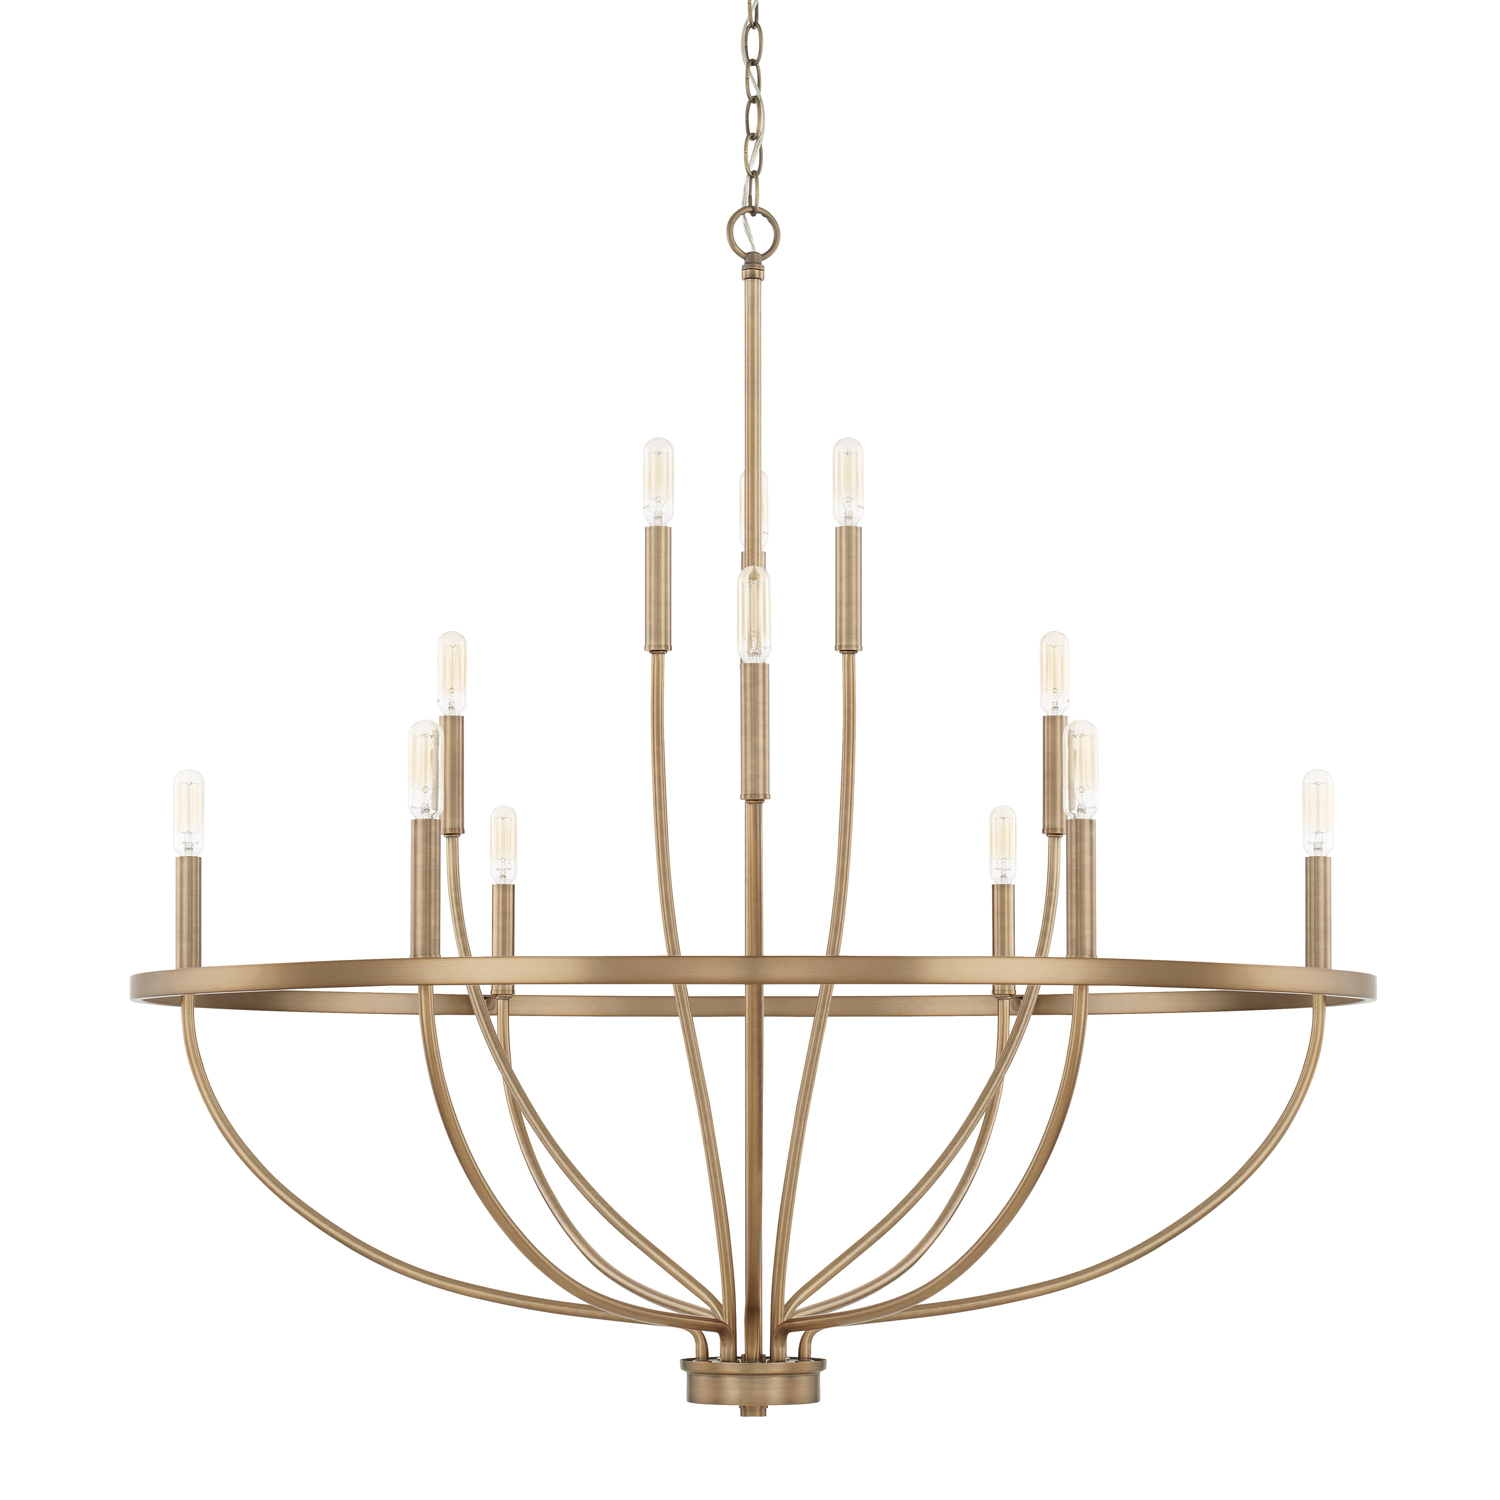 12 Light Chandelier from the Greyson collection by Capital Lighting 428501AD